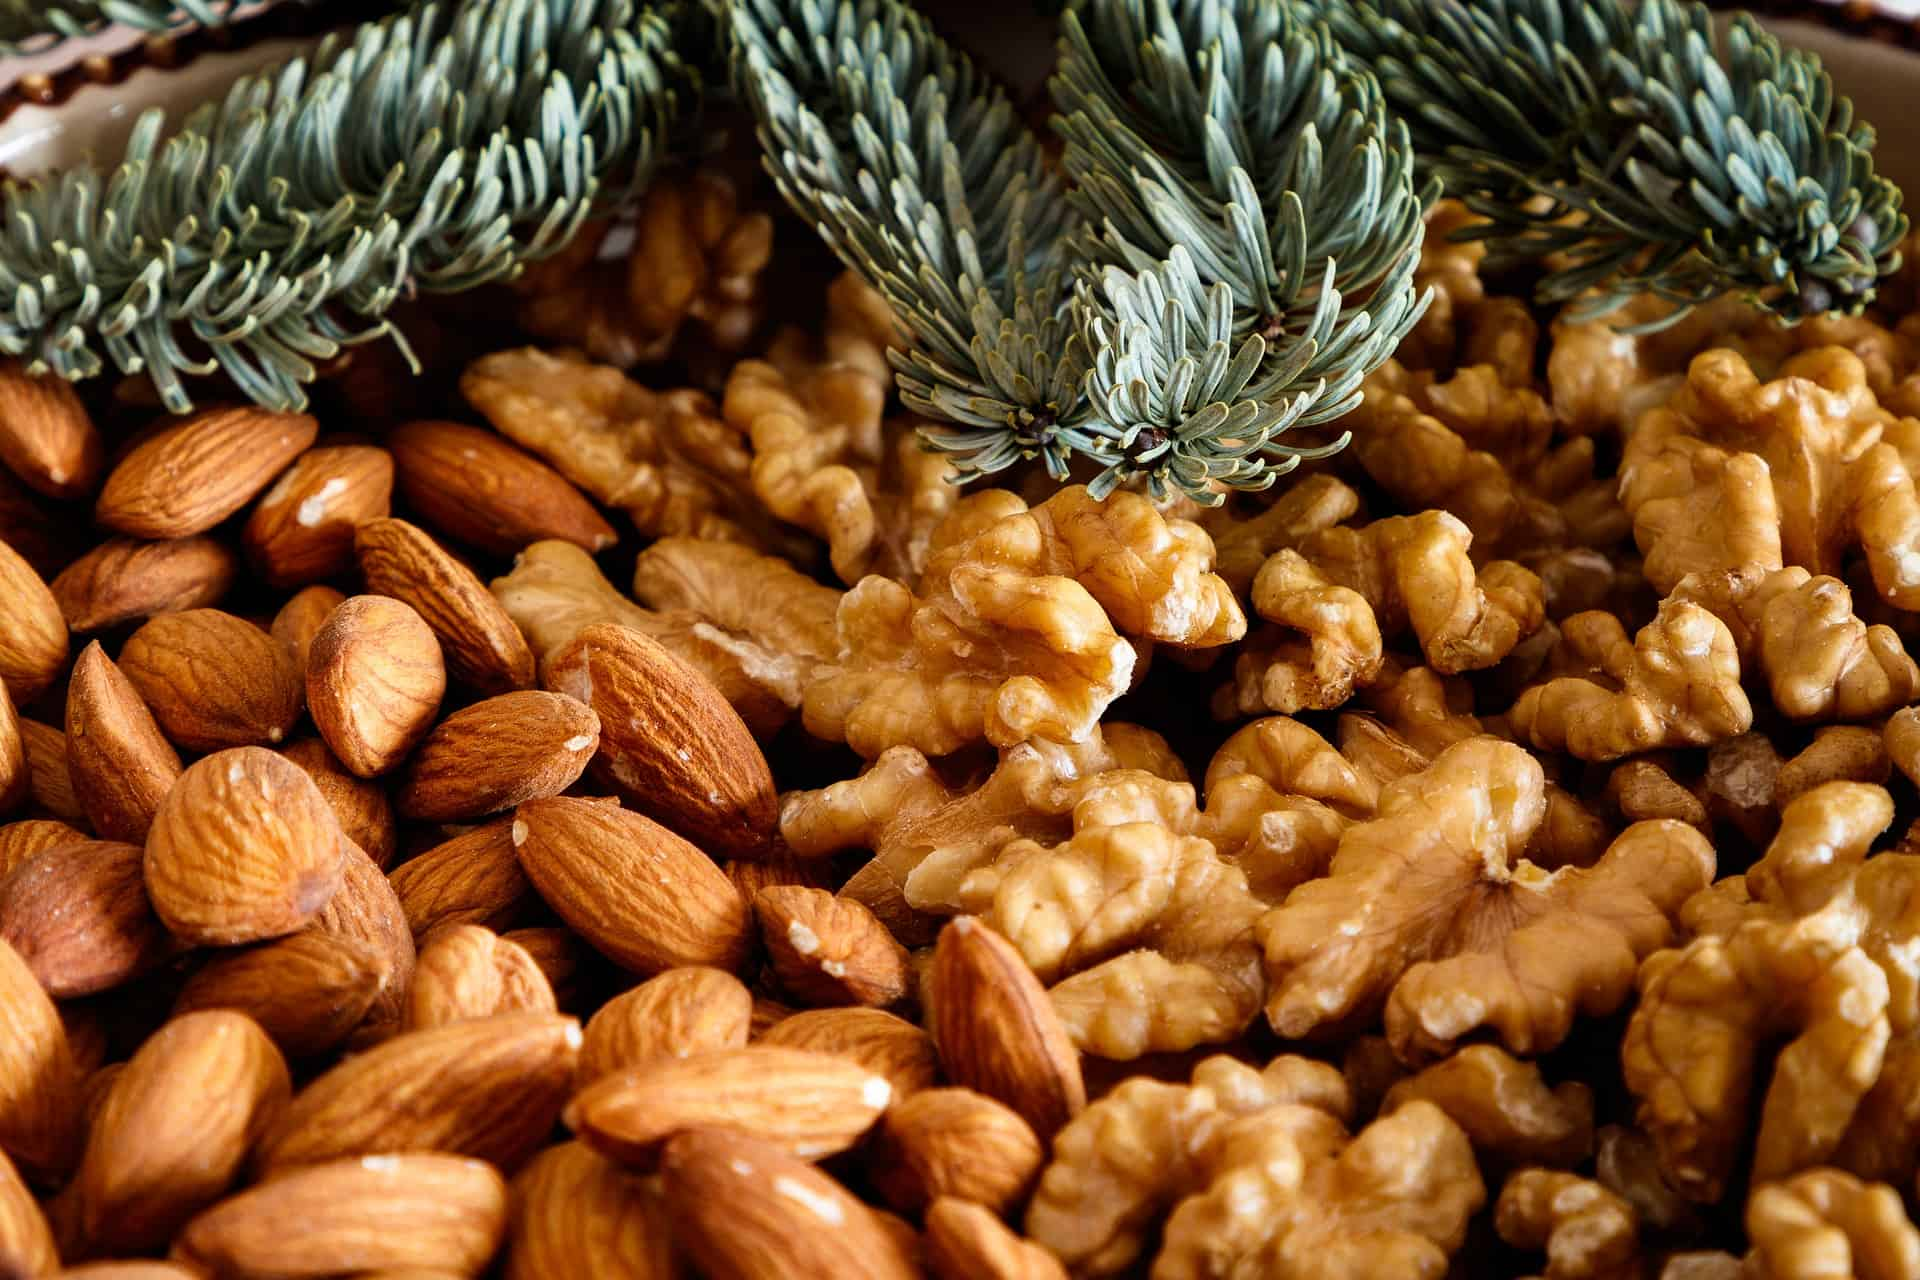 Are Almonds Healthier or Walnuts